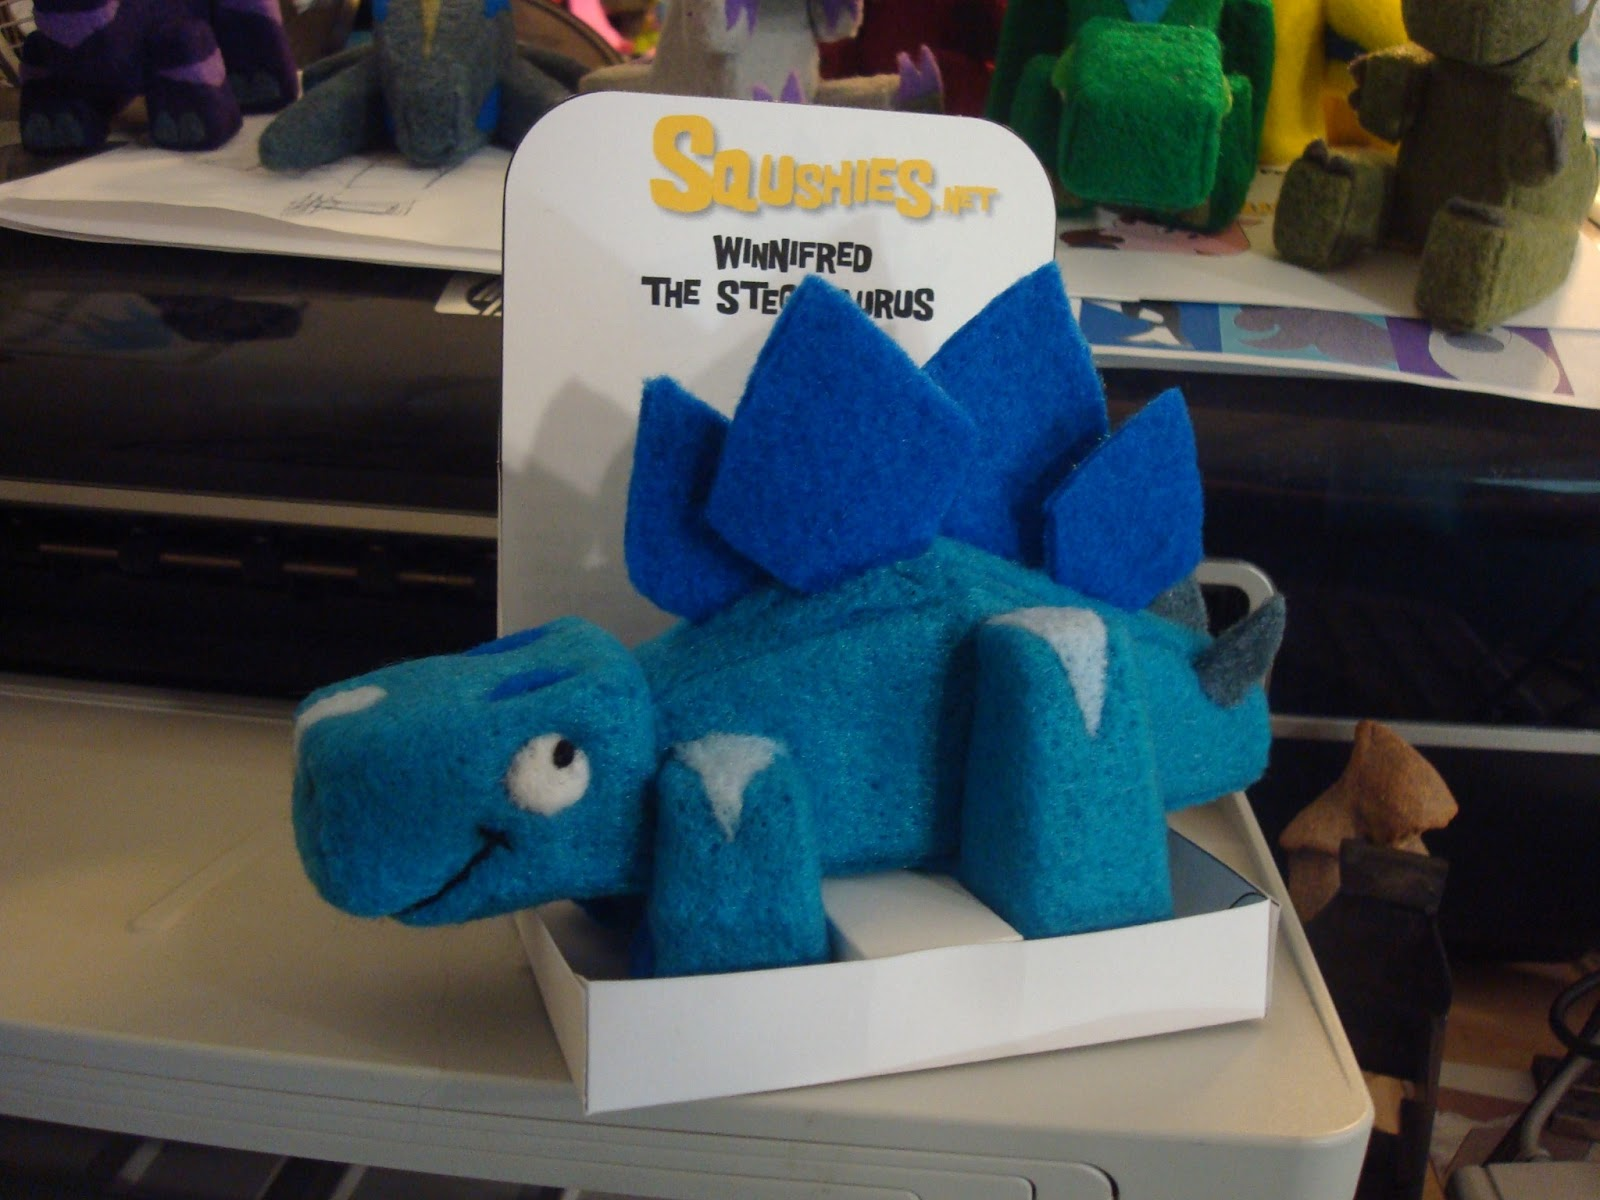 squshies felt dinosaur sculpture